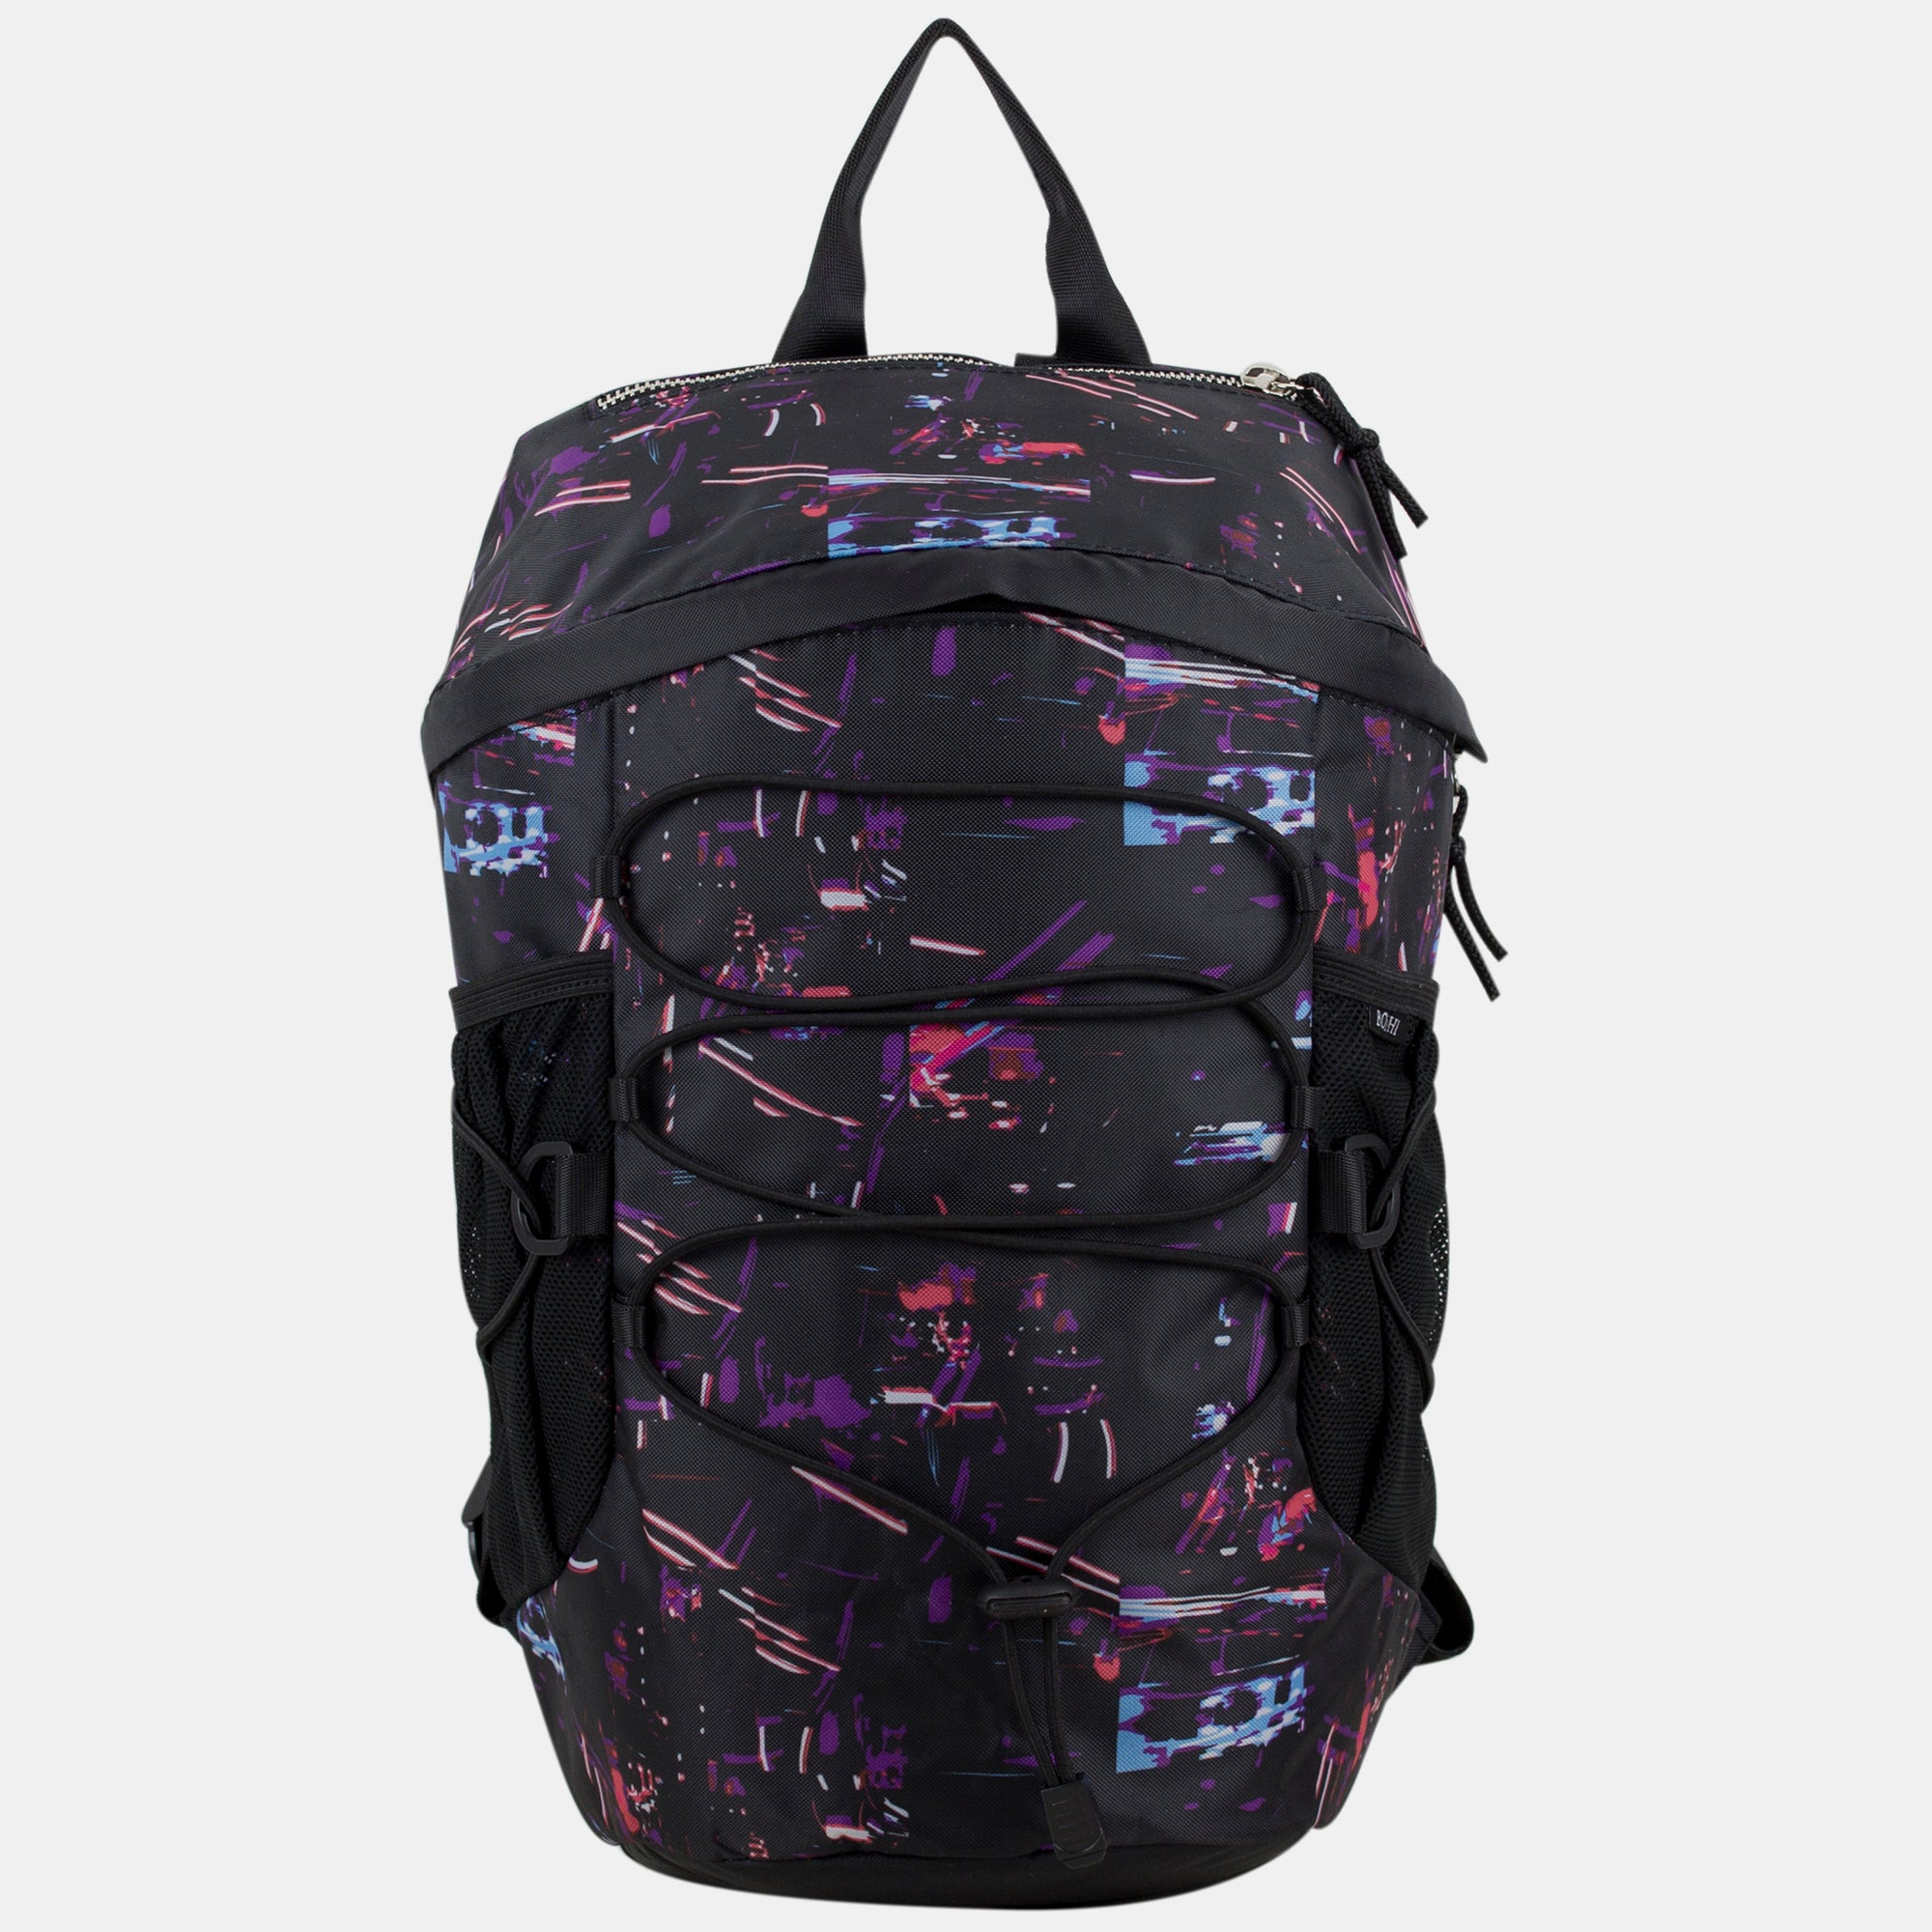 BODHI Athleisure Runner Up Midi Backpack, 16